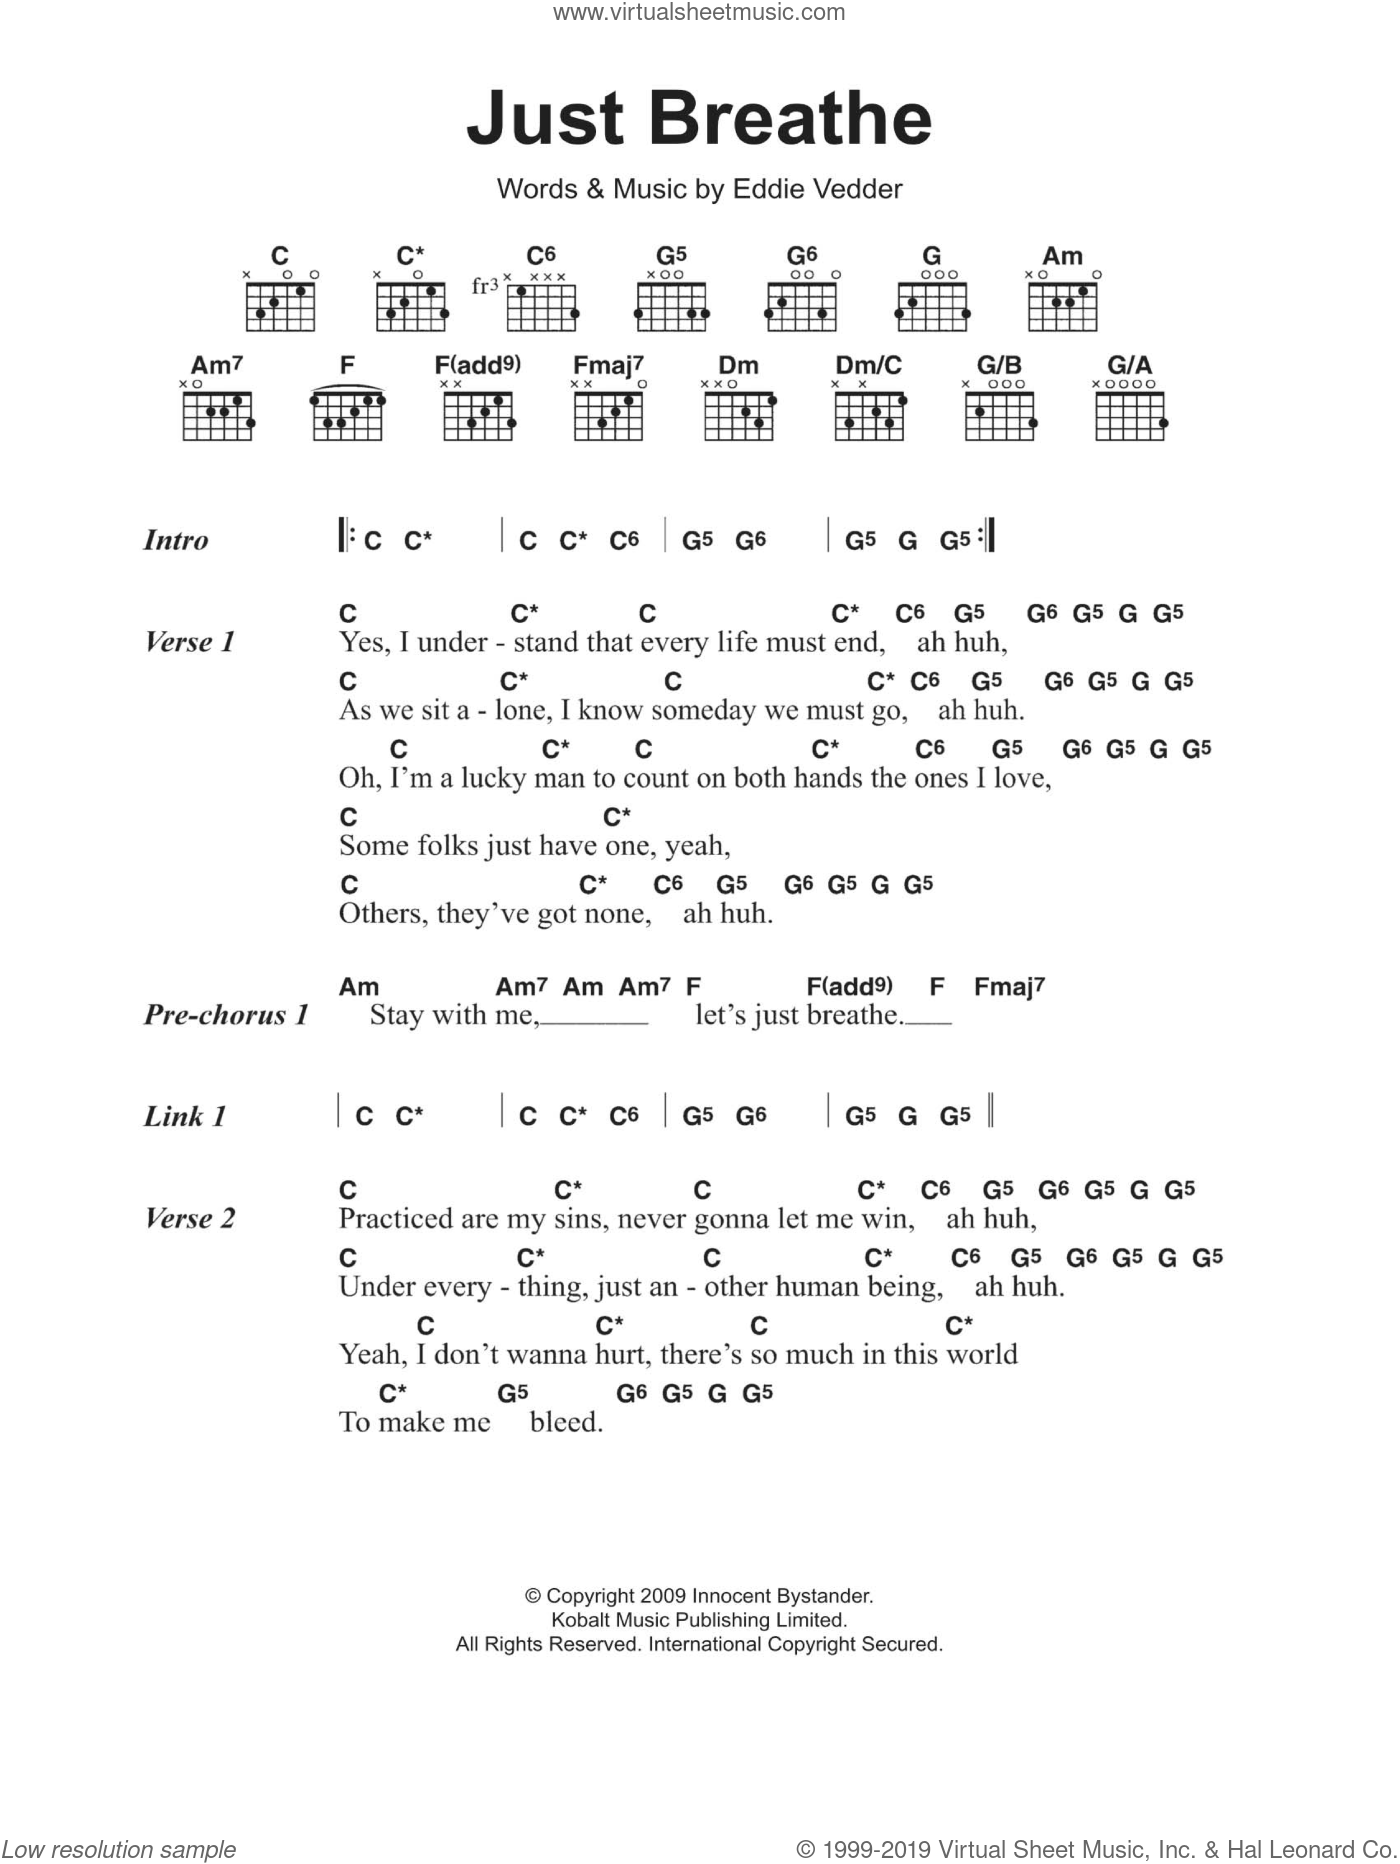 Jam - Just Breathe sheet music for guitar (chords) [PDF]